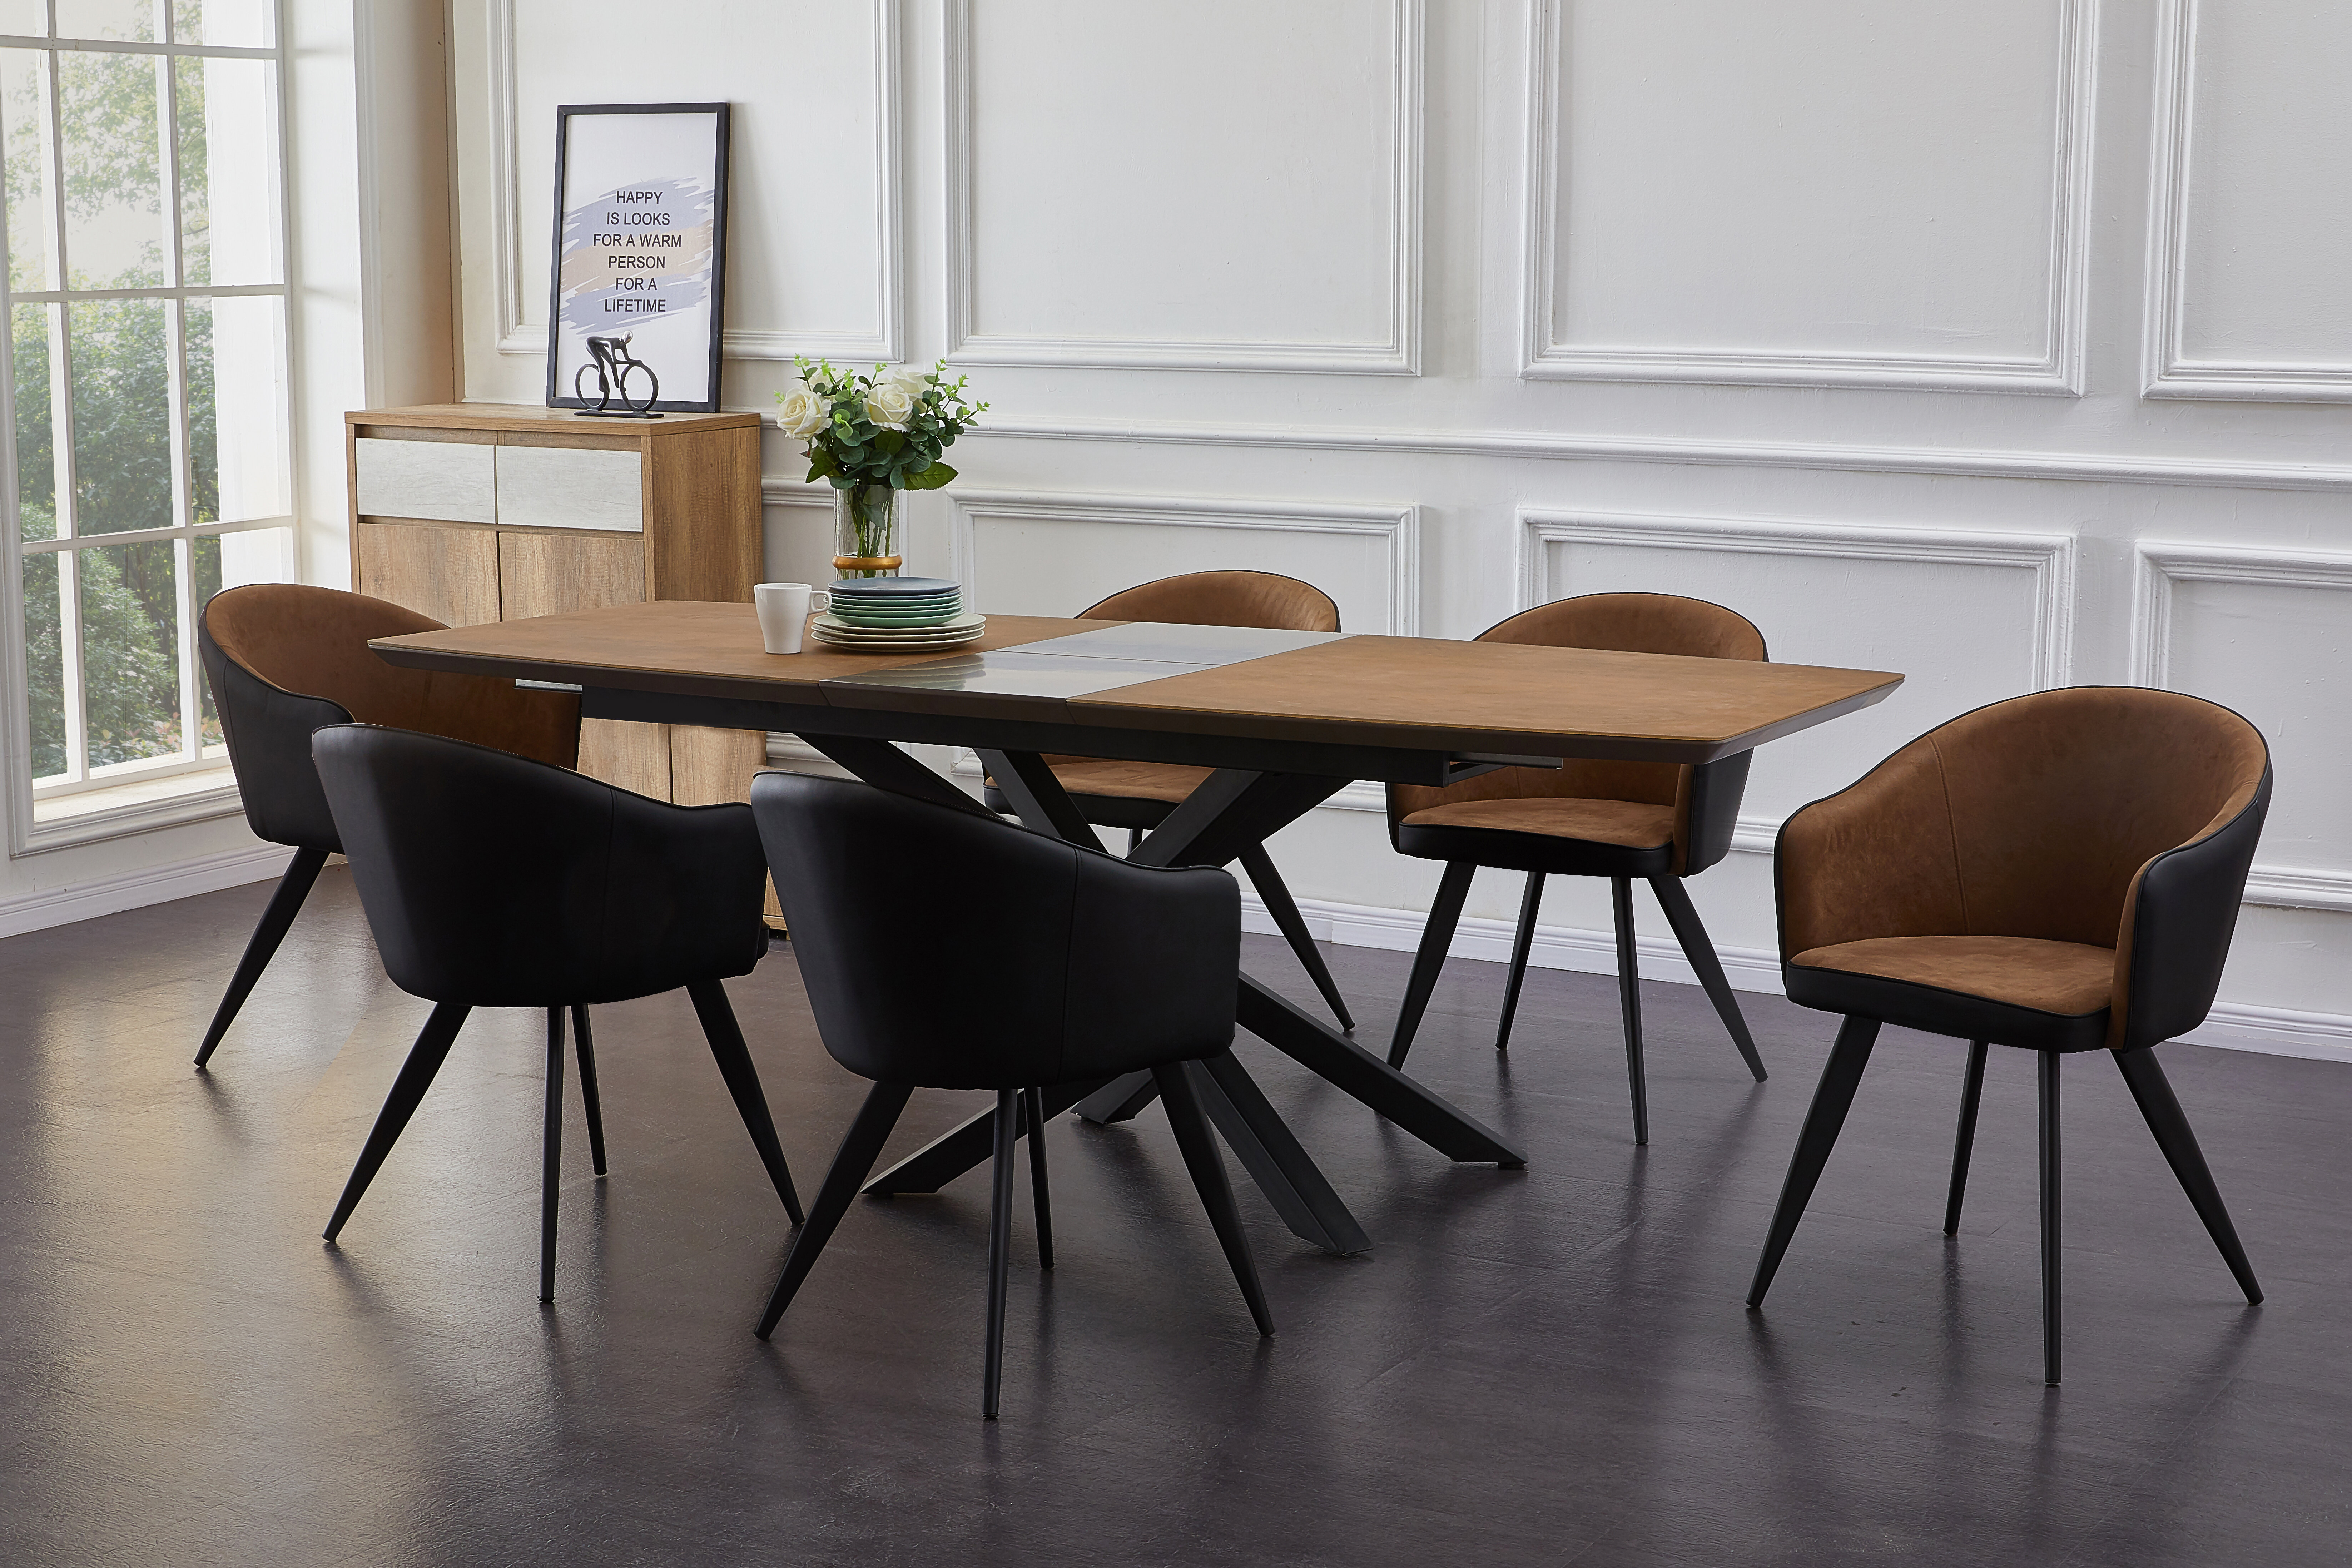 George Oliver Denzel Extendable Dining Set With 6 Chairs Reviews Wayfair Co Uk